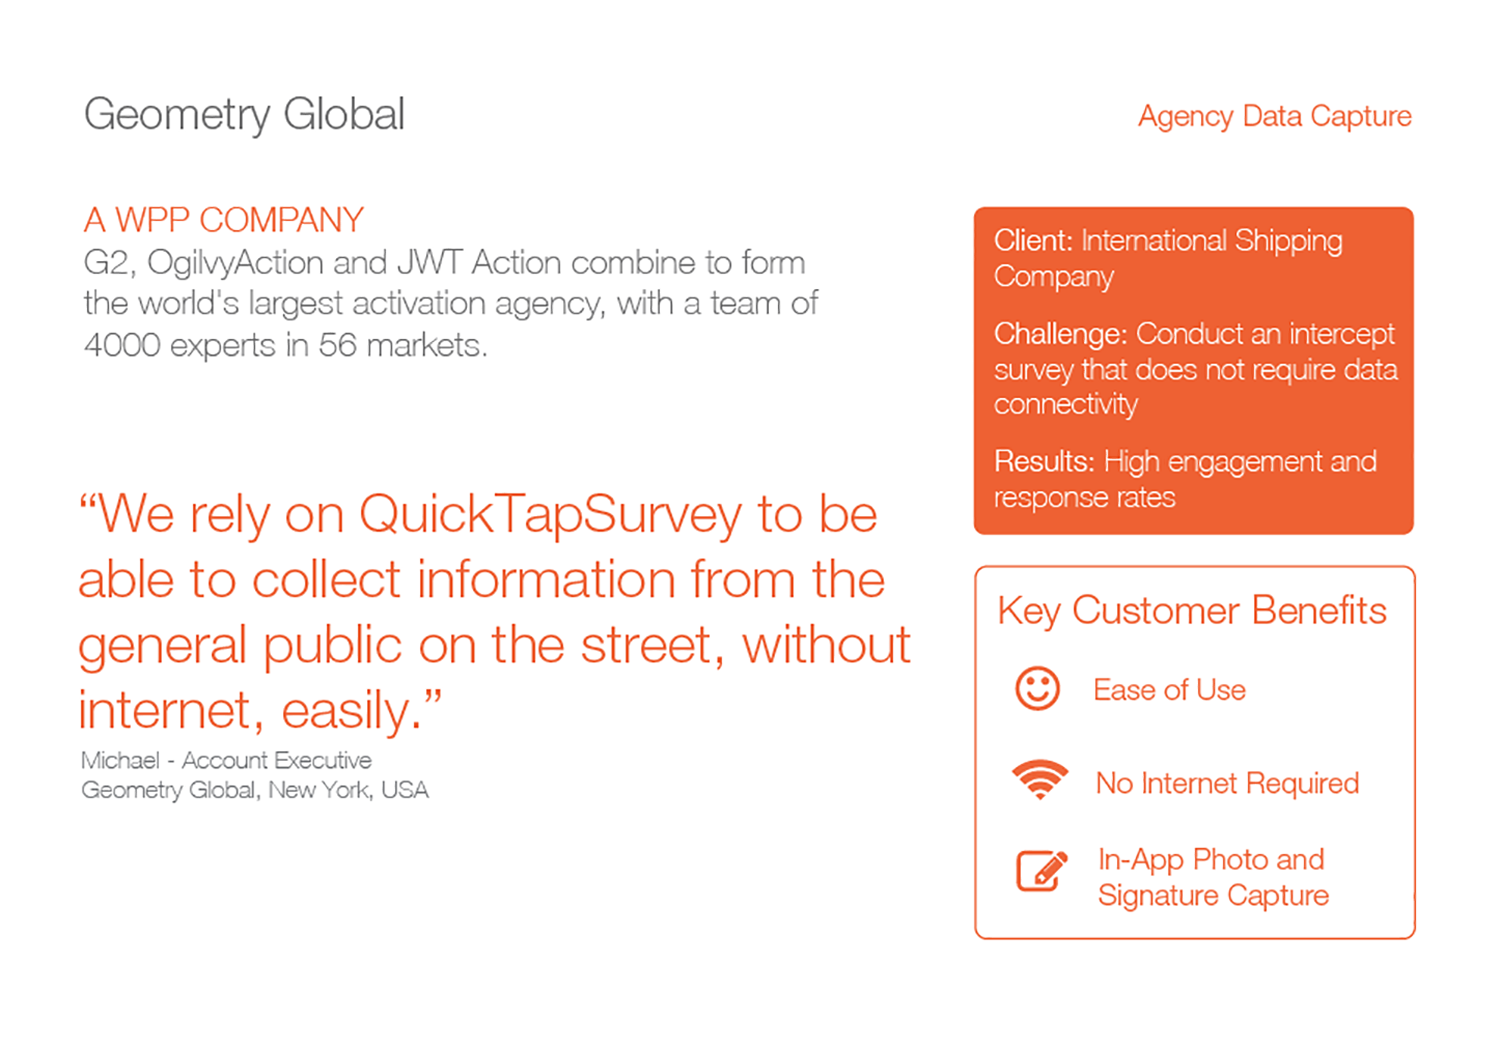 Geometry Global uses QuickTapSurvey